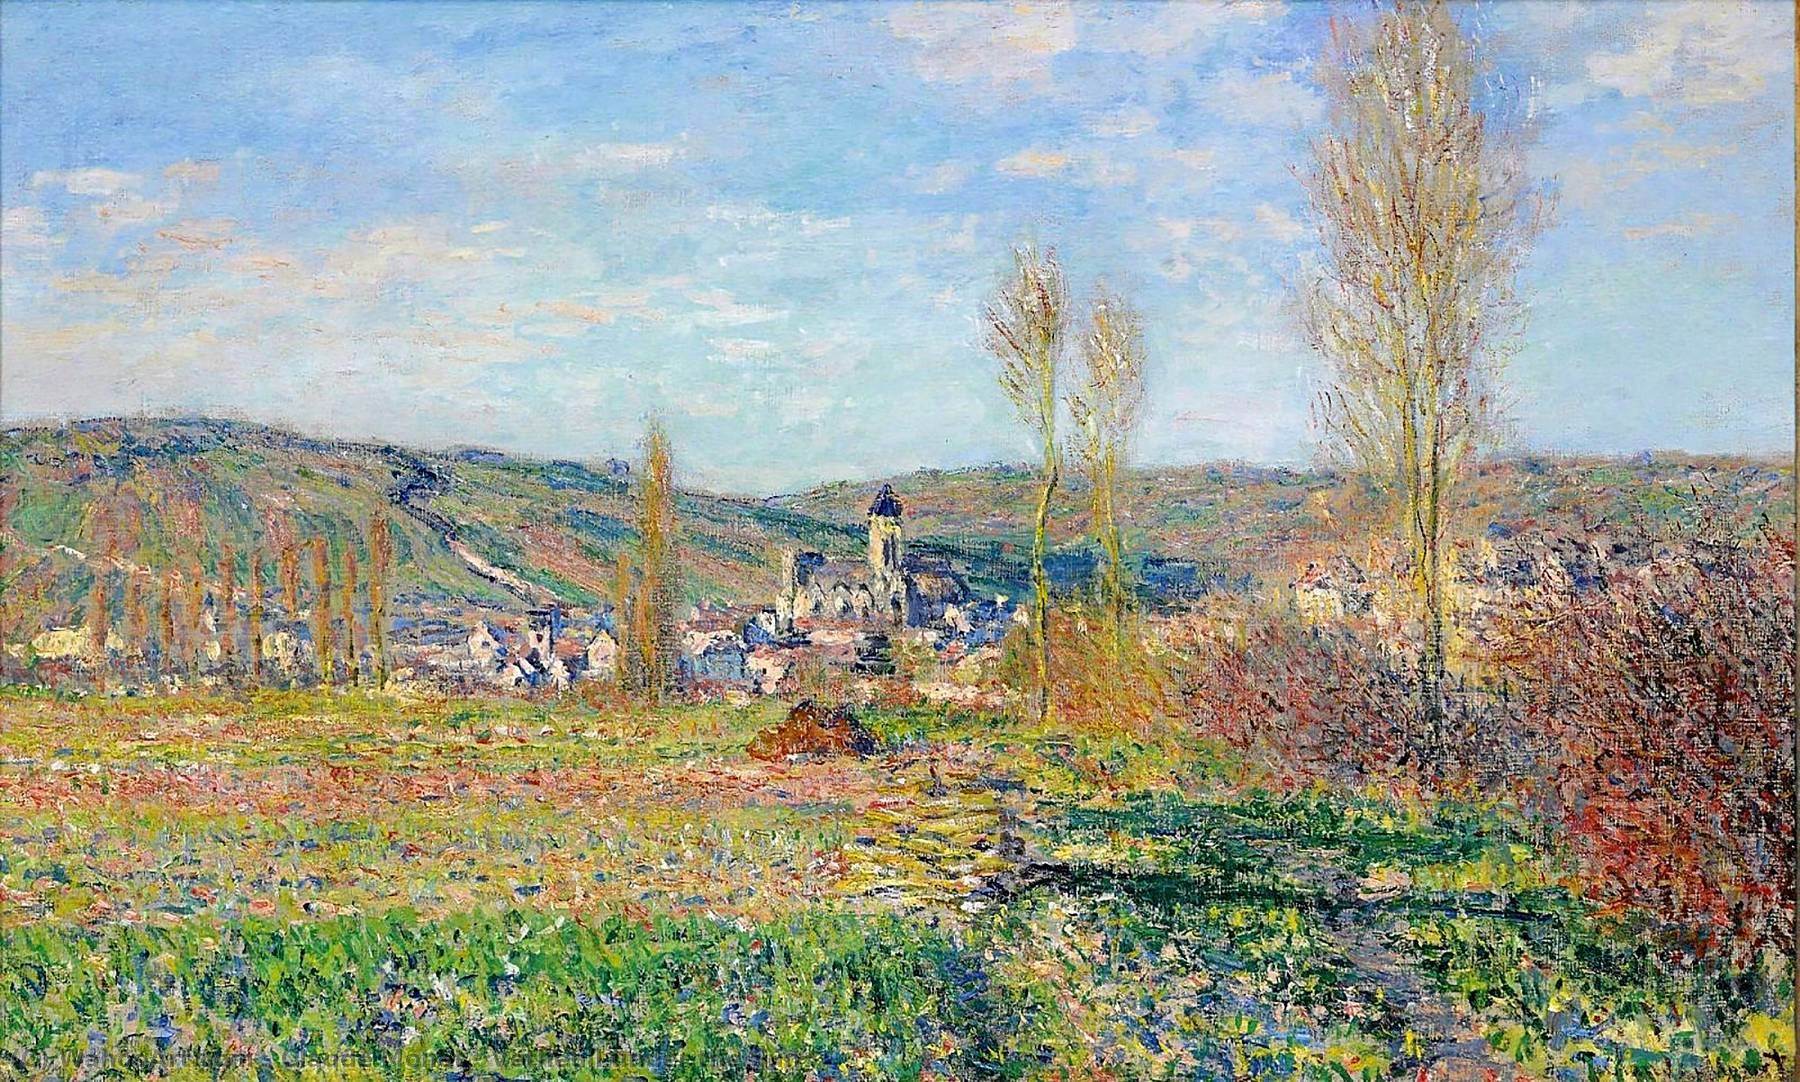 essay on claude monet Claude monet was born on november 14, 1840 in paris france and was son to claude adolphe monet and louise-justine aubree monet, even from a.